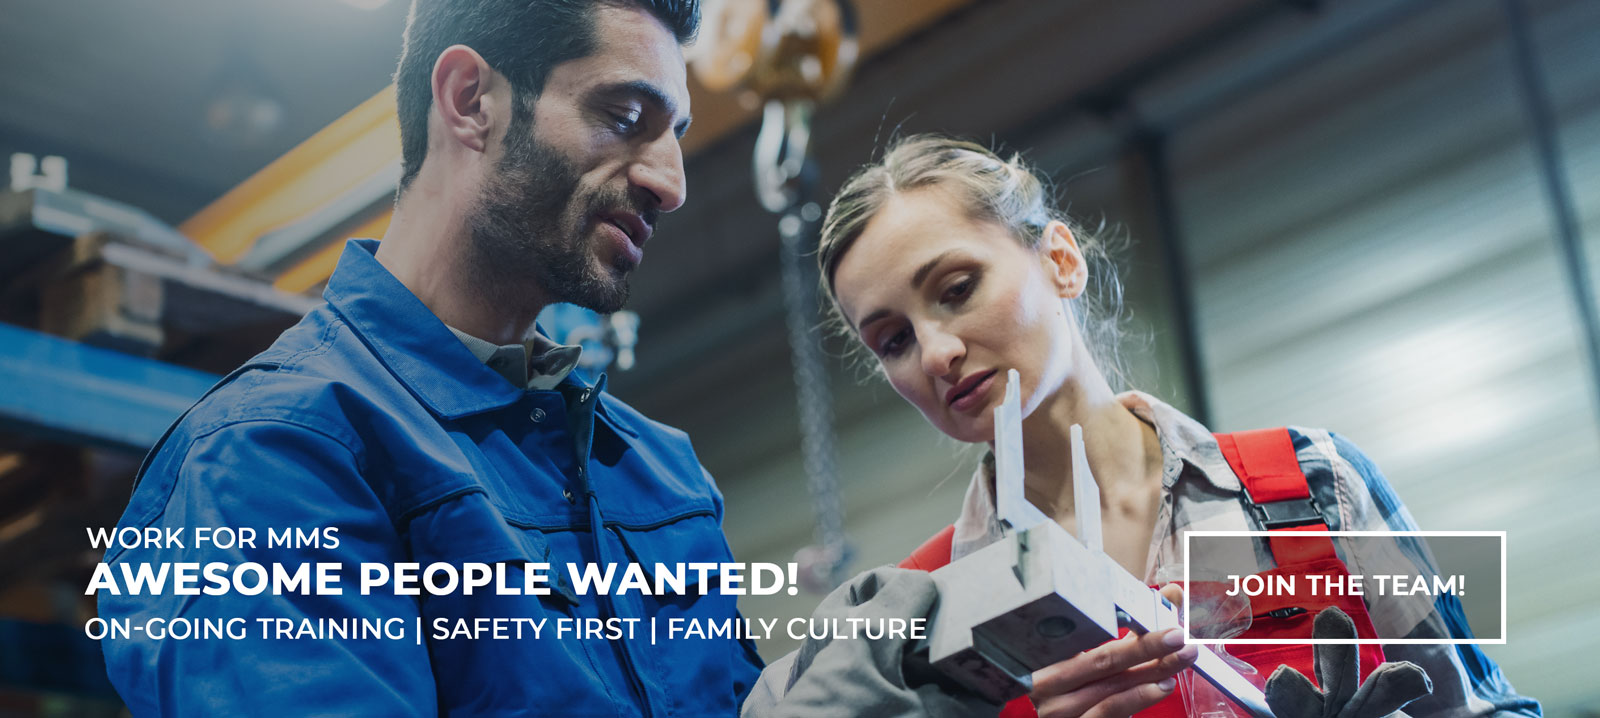 Work for MMS - Awesome People Wanted! Ongoing Training - Safety First - Family Culture - CLICK HERE TO LEARN MORE!